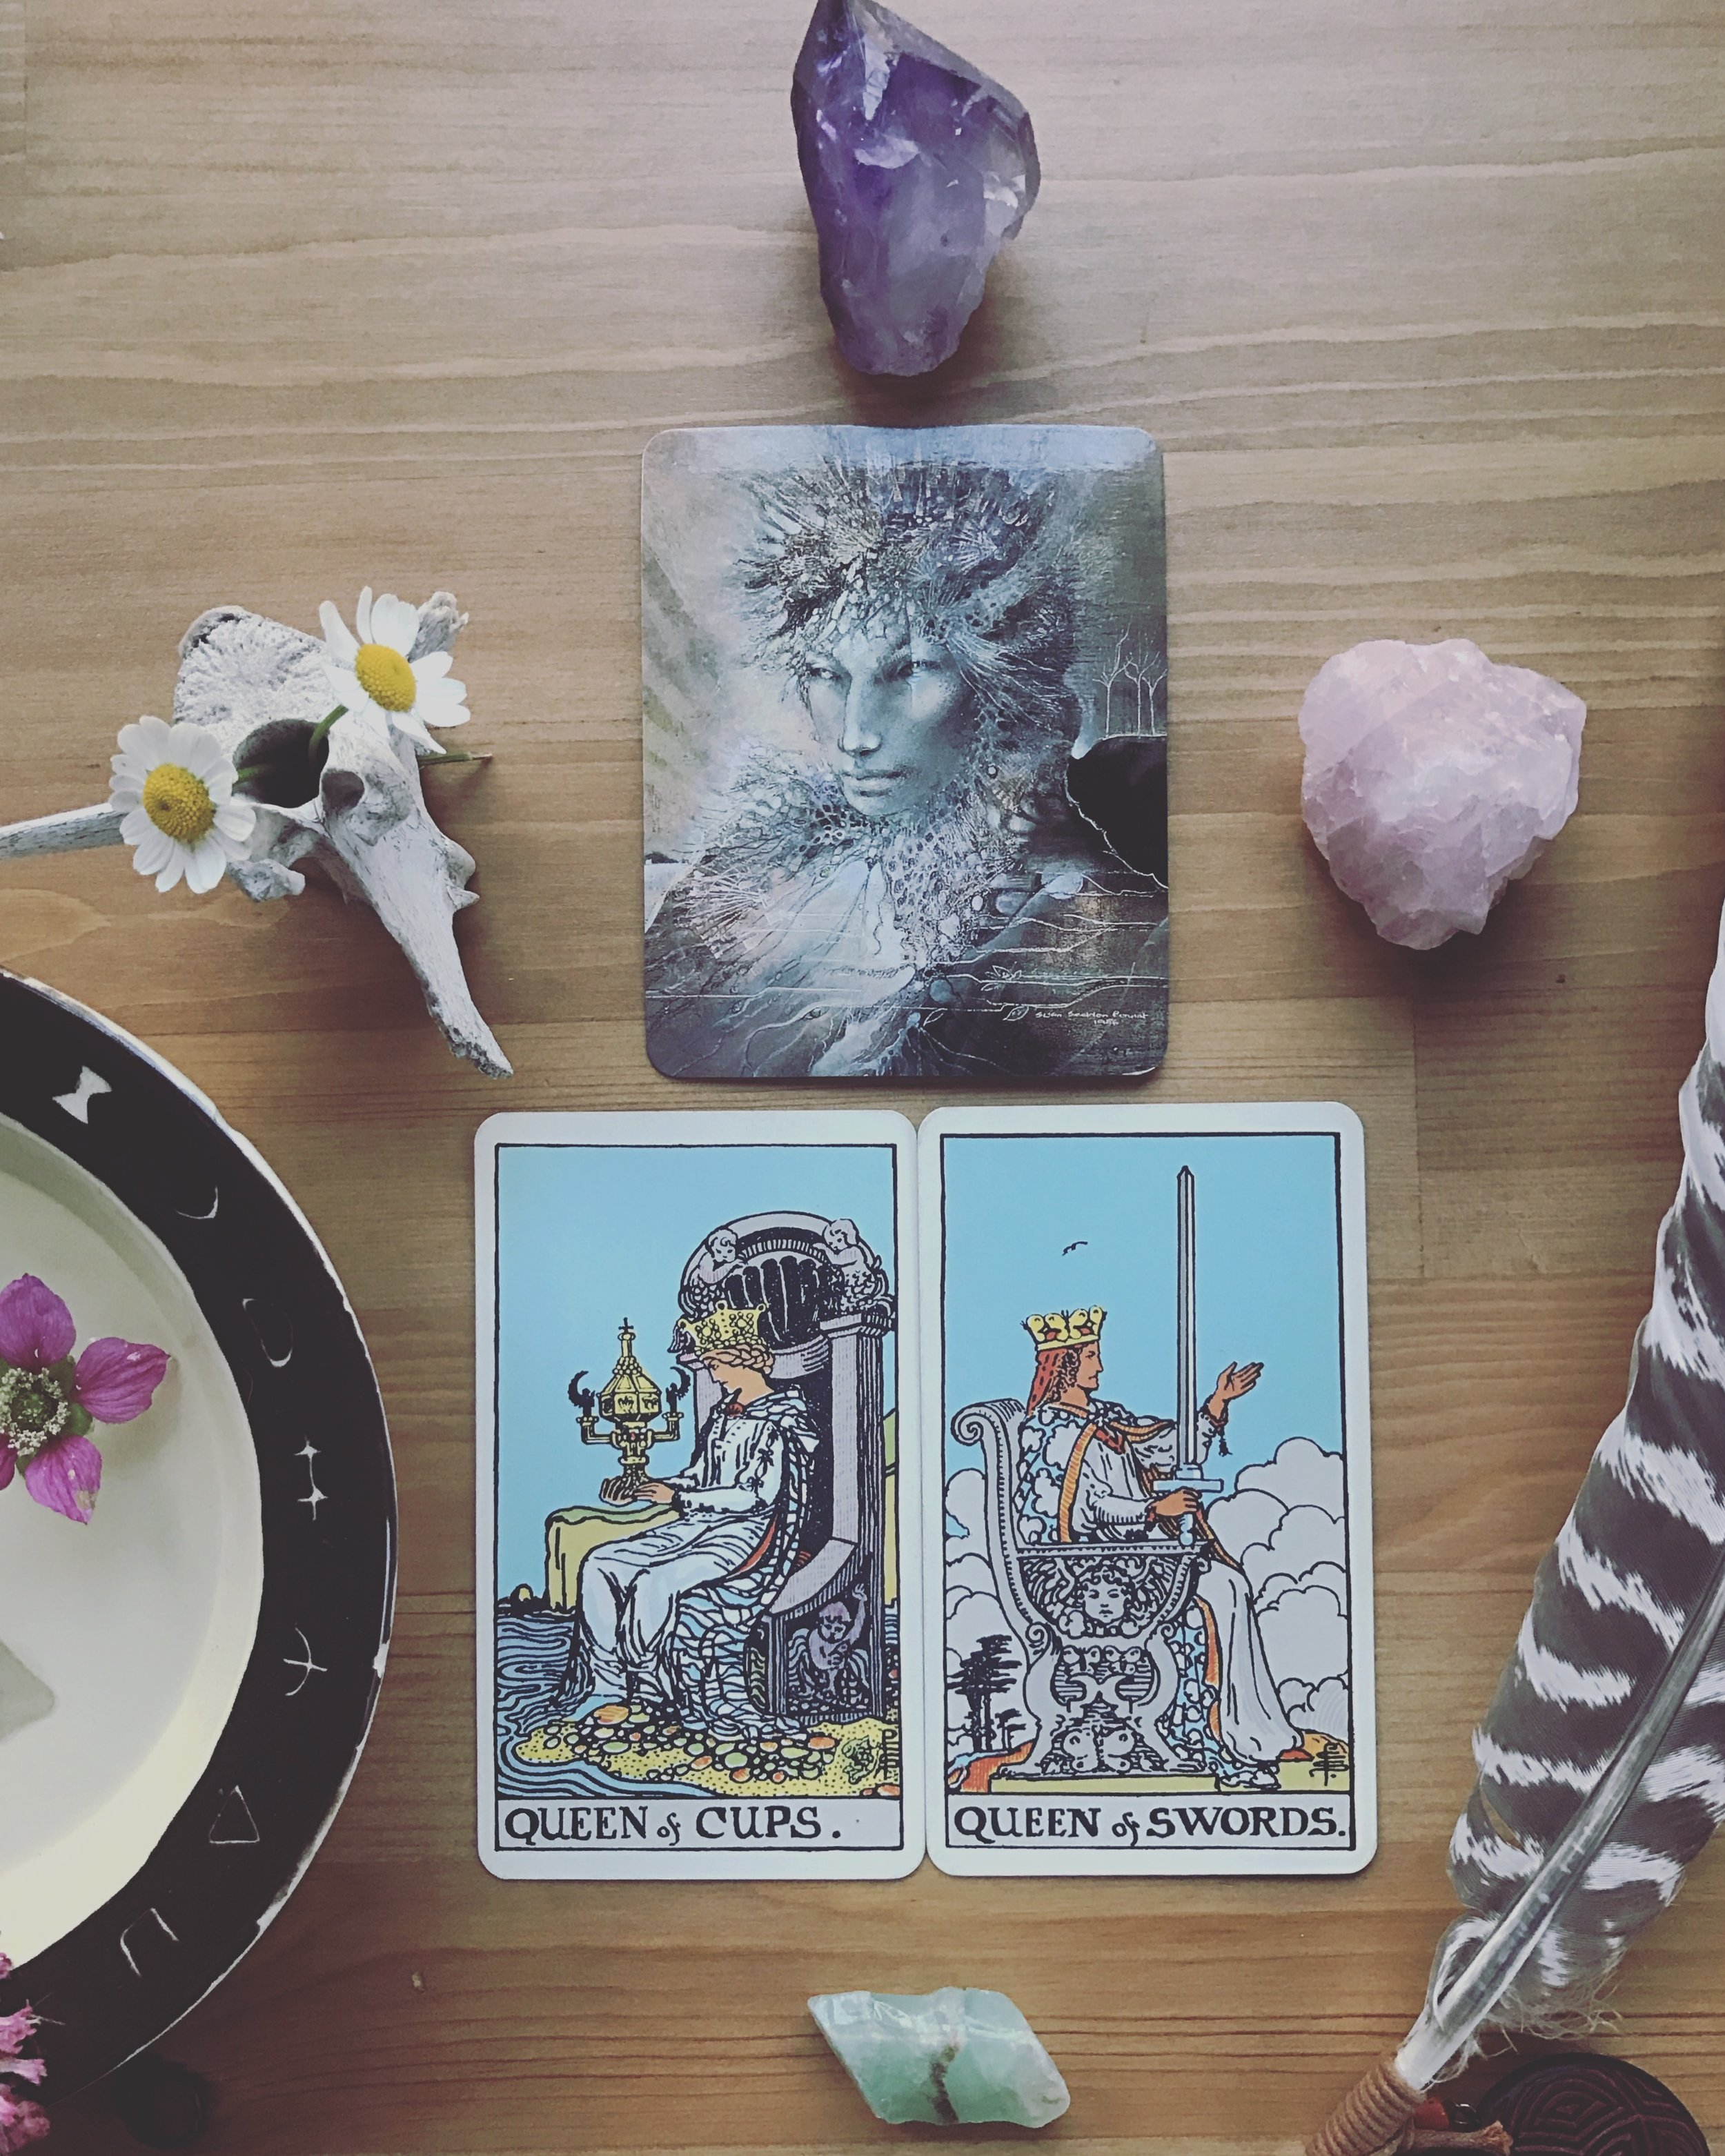 Wishing you all a beautiful new moon in Aries, occurring this evening. Aries is full of passion and fire, able to step into action without second guessing or overthinking. And damnnnnn do some of us need that energy in our lives (me, for one). For those who are in touch with their fiery selves, today's draw brings wisdom in balance for you as well. This morning we are given the queen of cups and the queen of swords, back to back. They may be facing away from one another, but I see these two working together, making sure to have a view of both sides. They have each other's back. Artemis watches from above them, a reminder to be grounded in this wild earth and to bring fuel to their independent natures.   Patriarchal culture (in which tarot was created too) likes to draw a line between logic and emotion, the intuitive and the analytical. But as we are learning more and more, binaries aren't about lines: they are circles and spectrums, cycles and waves. Our intuition obviously aids our analysis and logic can teach us quite a bit about our emotions. These aspects of ourselves interact and inform one another throughout our daily thoughts and expressions. They are not in separate boxes.  As our energy shifts with the seasons and the planets, let us utilize both our logic and our intuition. This combination grants us some fierce, feeling, intelligent, and wild energy. Let us channel it into our creativity. Allow it to guide our actions. May we revel in ourselves, one another, and the glory of being alive and able to act, able to create, able to analyze and think. Let us follow our intuition into action and allow our wit to inform us along the way. Let us be active in our connection to our bodies, our planet, and our compassion for each other and the fate of this world.  Let us be centered, have one another's back, and continue to allow all four elements be present in our creative endeavors, in the actions we take, in the love that we make, and the connections we form.  Lov